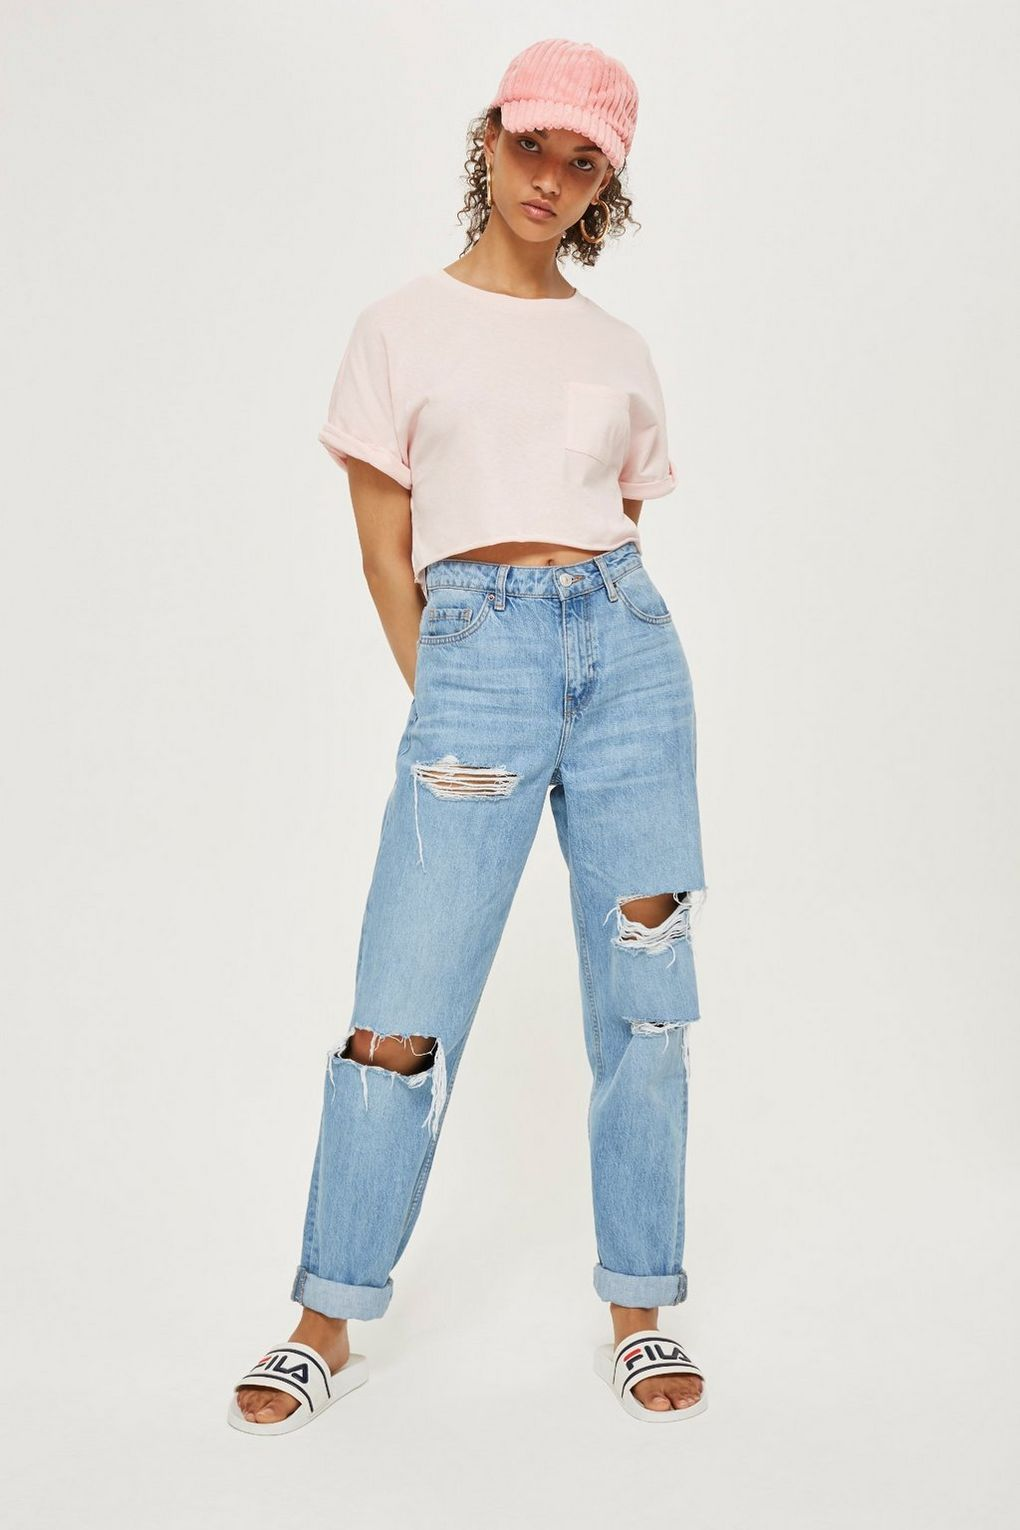 9dca9a57b2a Cut Off Cropped T-Shirt - New Semester Essentials - Clothing - Topshop USA  Product